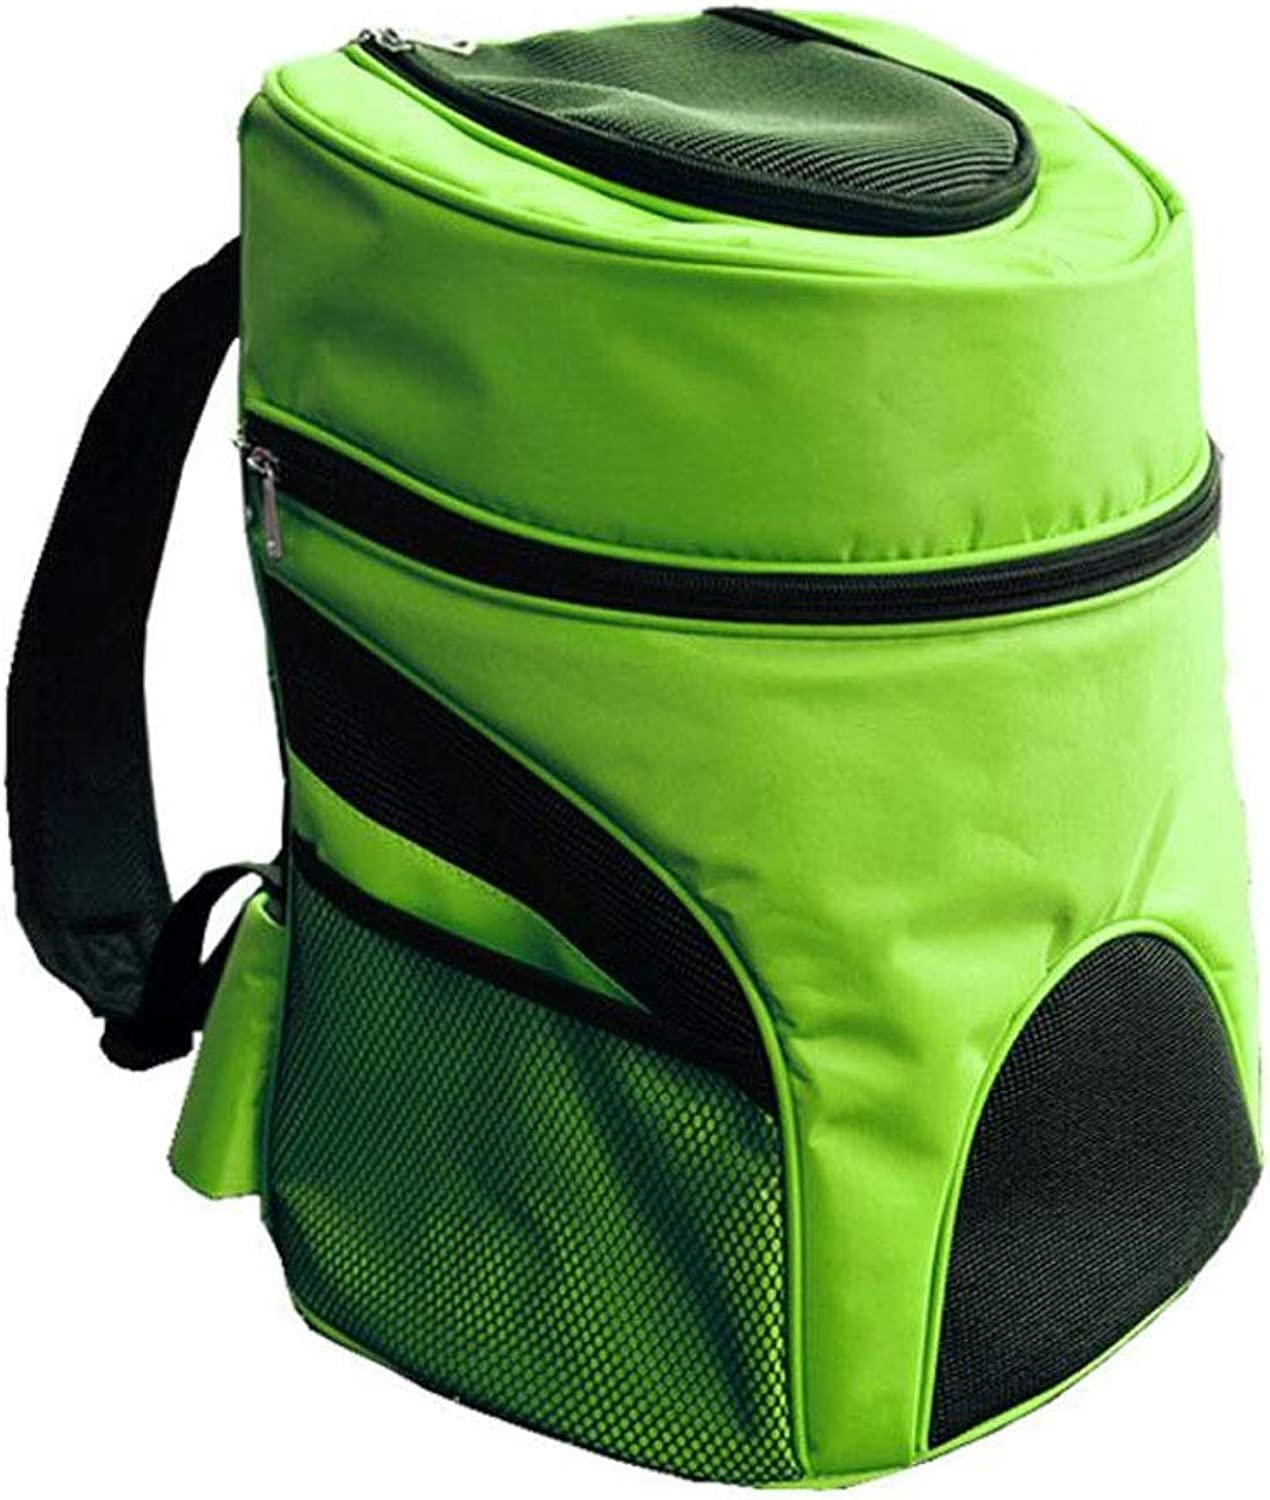 FJH Double Shoulder Pet Box Breathable Cage Cat Dog Backpack Portable Travel Transport Car Out of Consignment 4 colors (color   Green, Size   34  25  39cm)